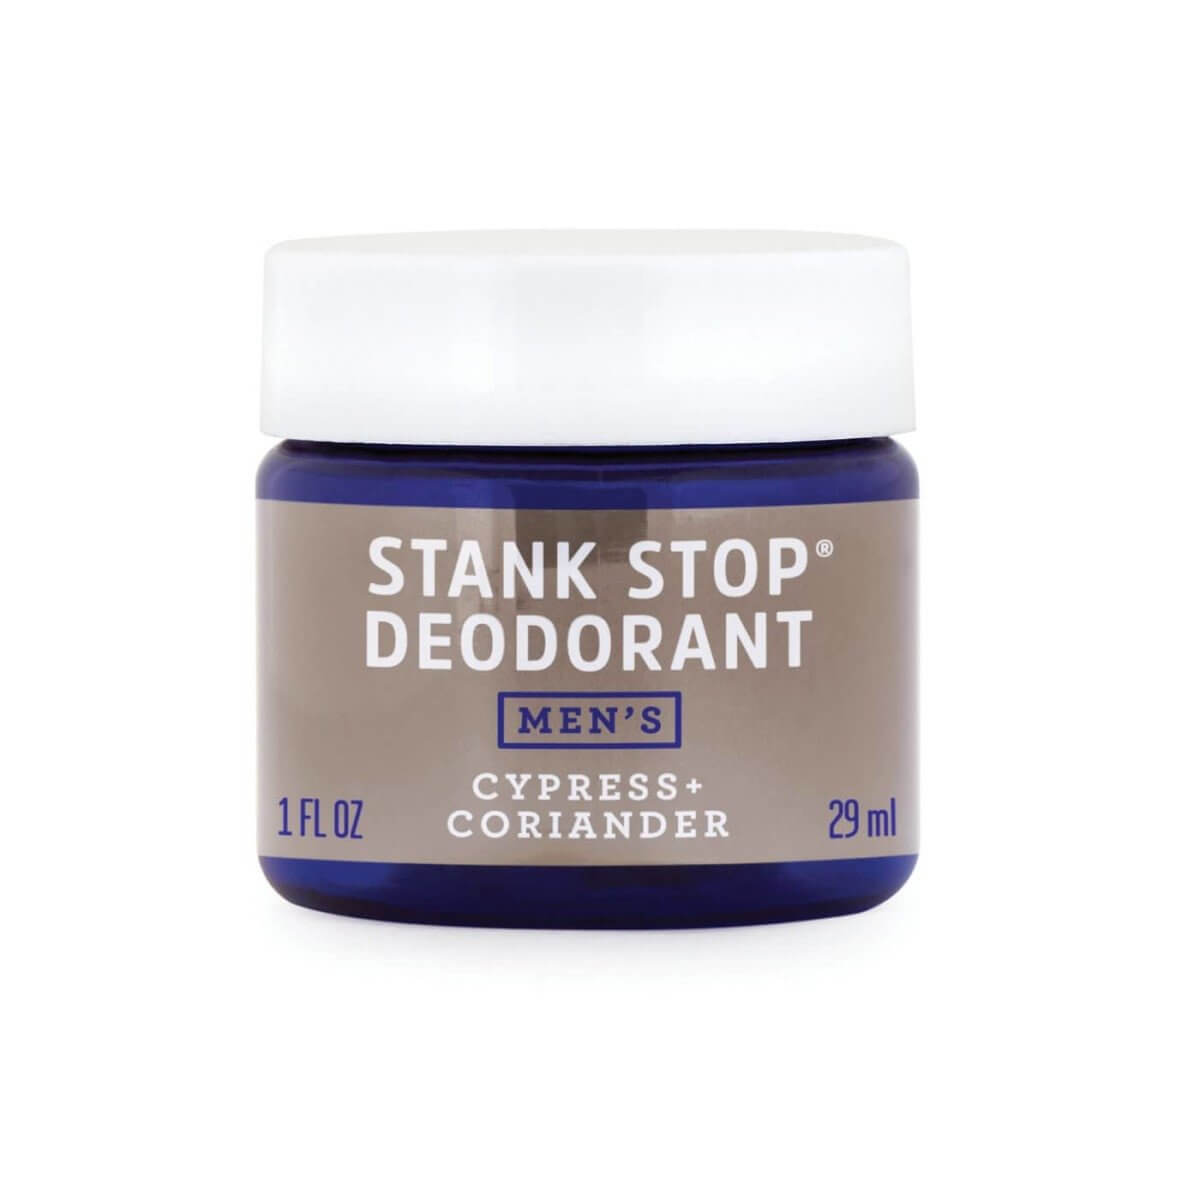 Pit Stank Got You Down Check Out The 5 Best Deodorants For